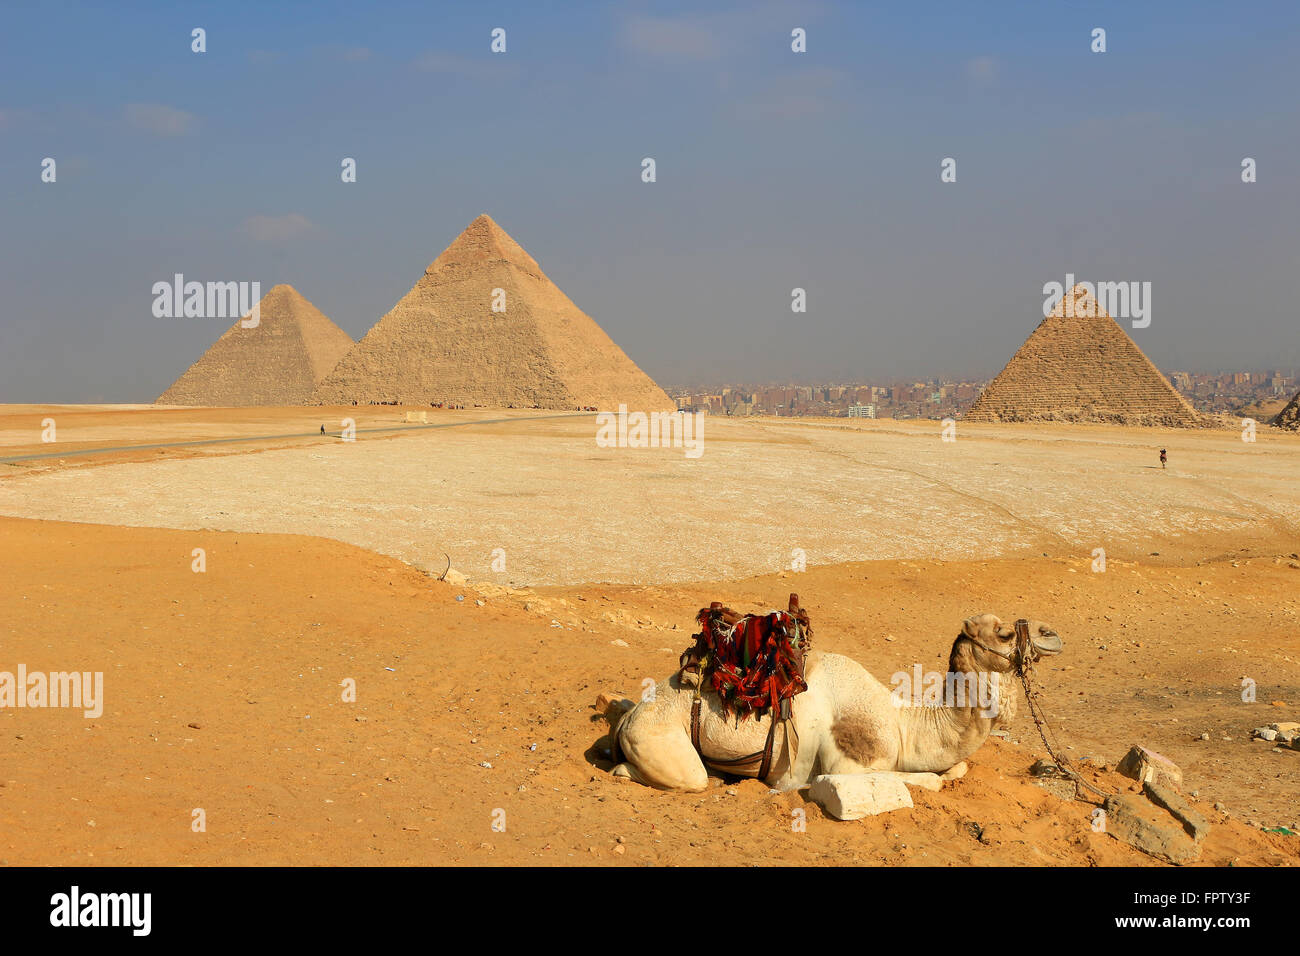 Camel relaxing at The Pyramids of Giza, man-made structures from Ancient Egypt in the golden sands of the desert - Stock Image